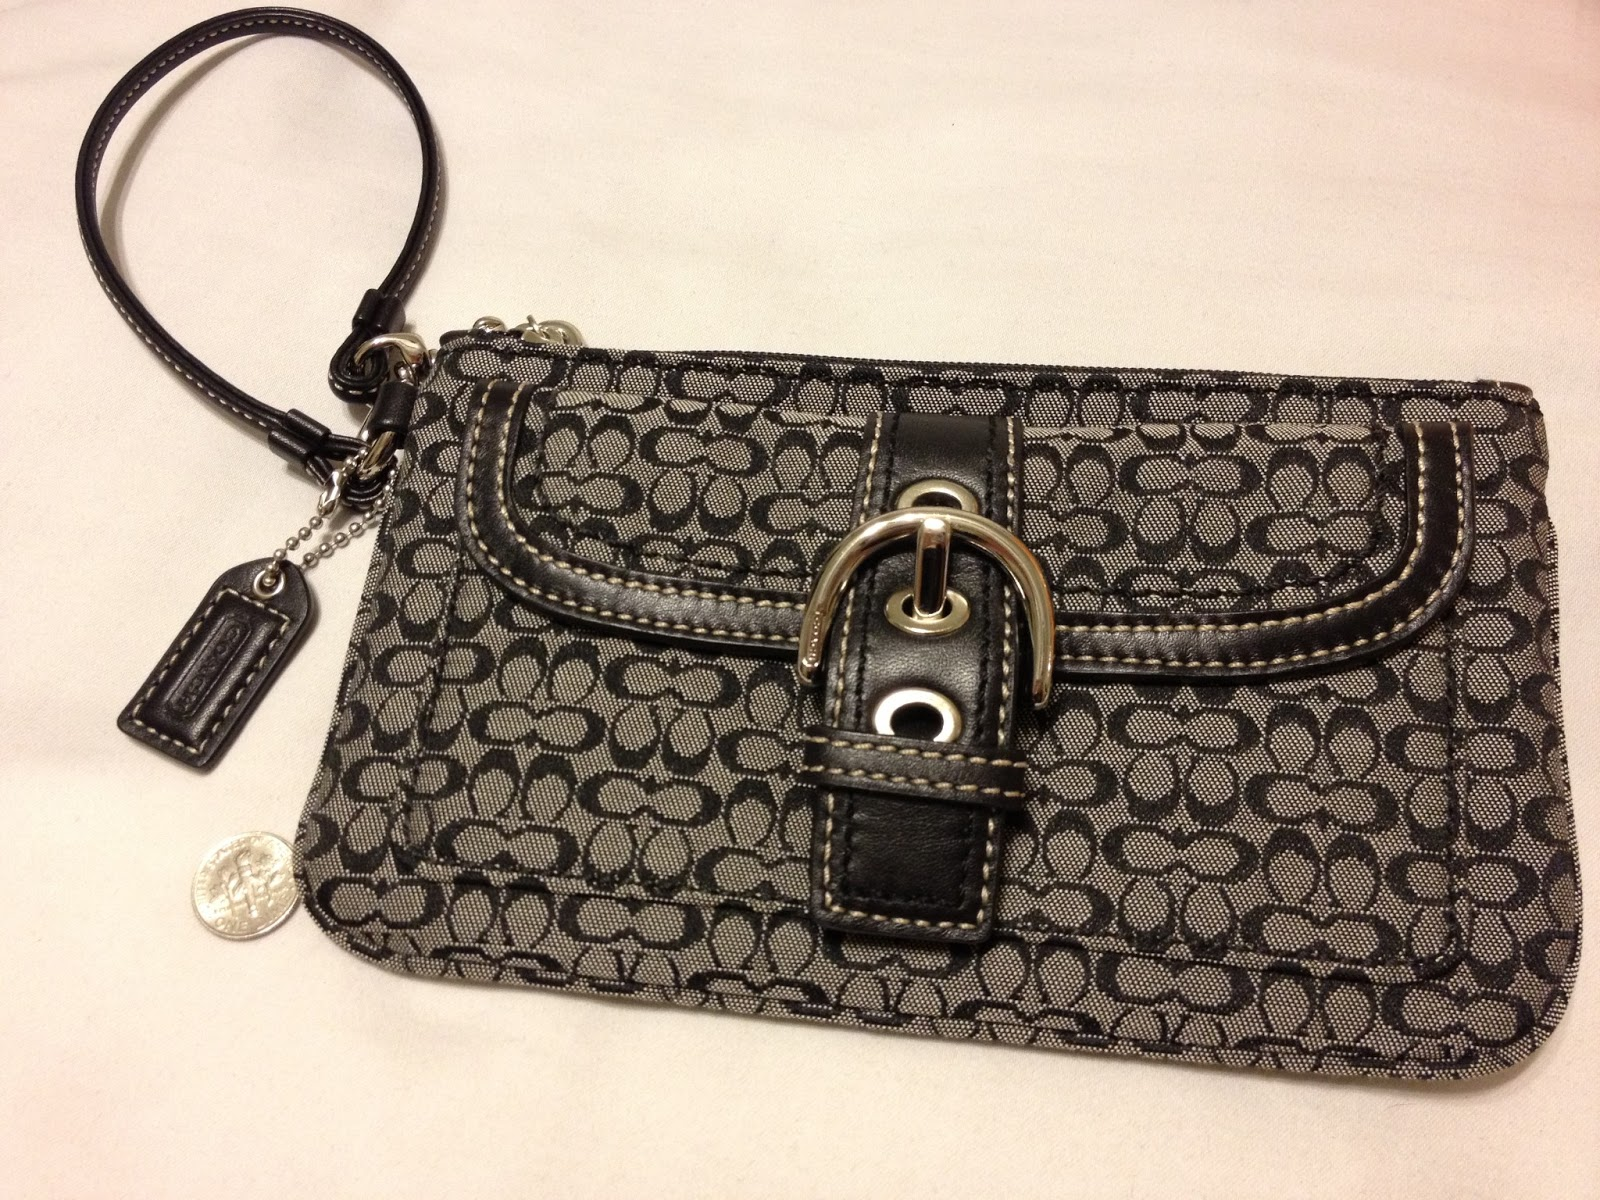 Lookimsopretty Swap Or Sell Accessories